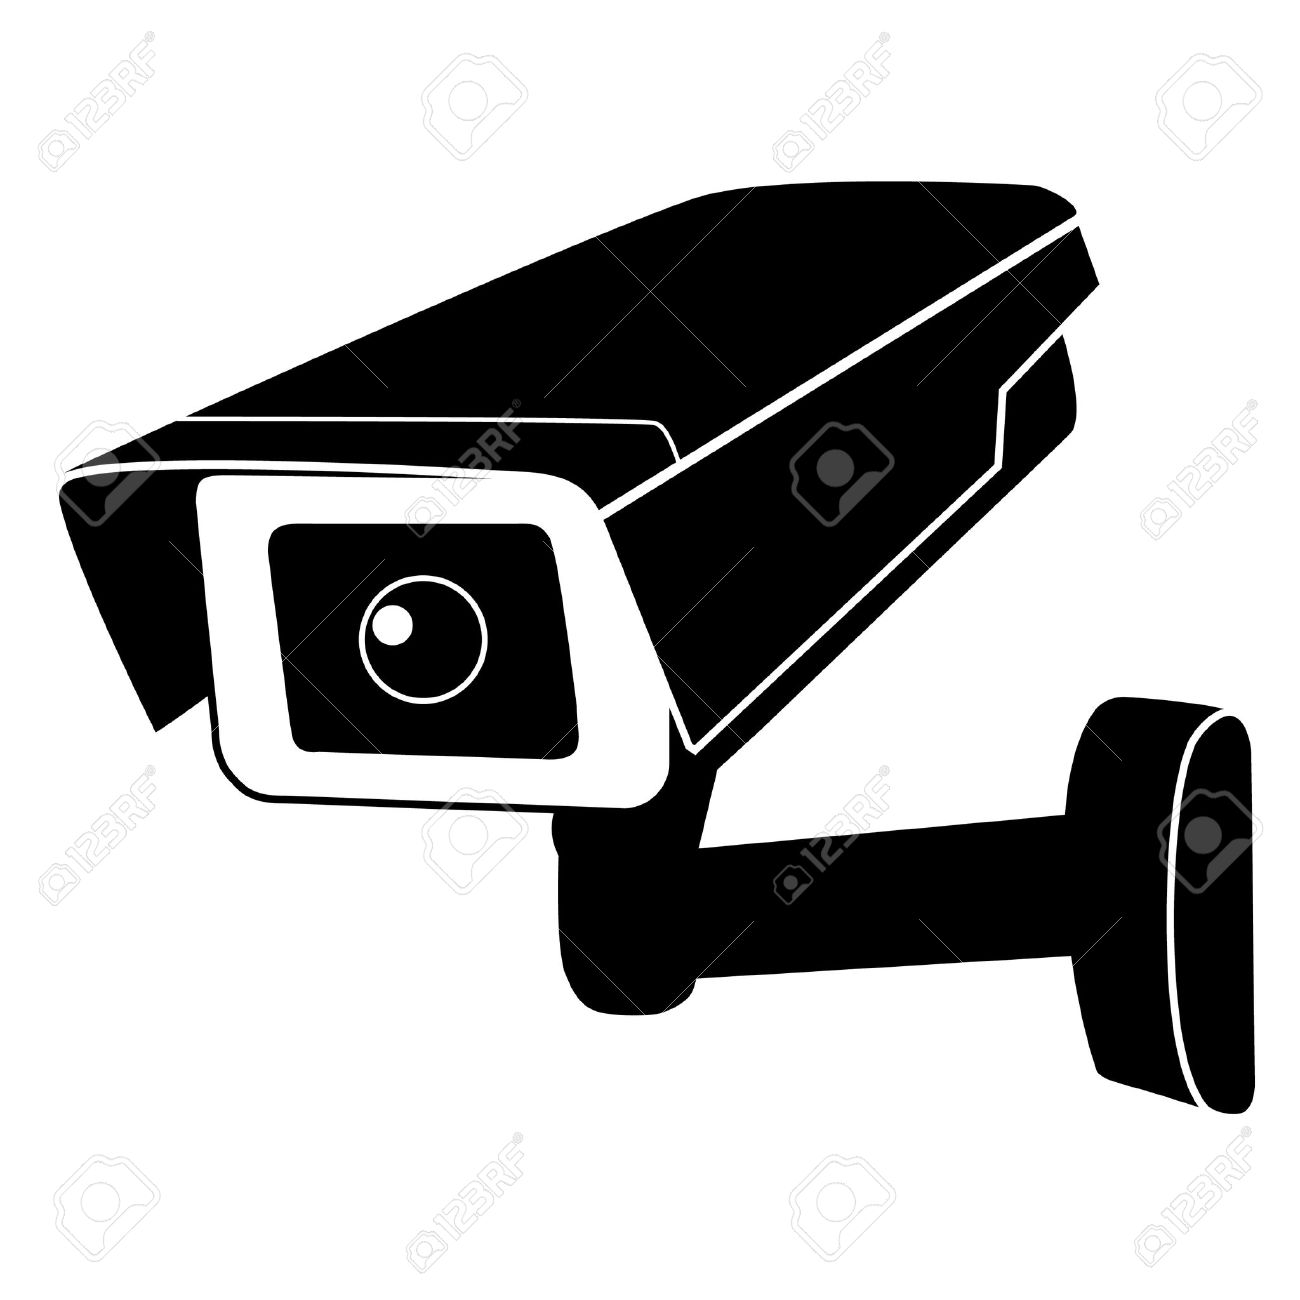 Cctv Icon Png #257426.